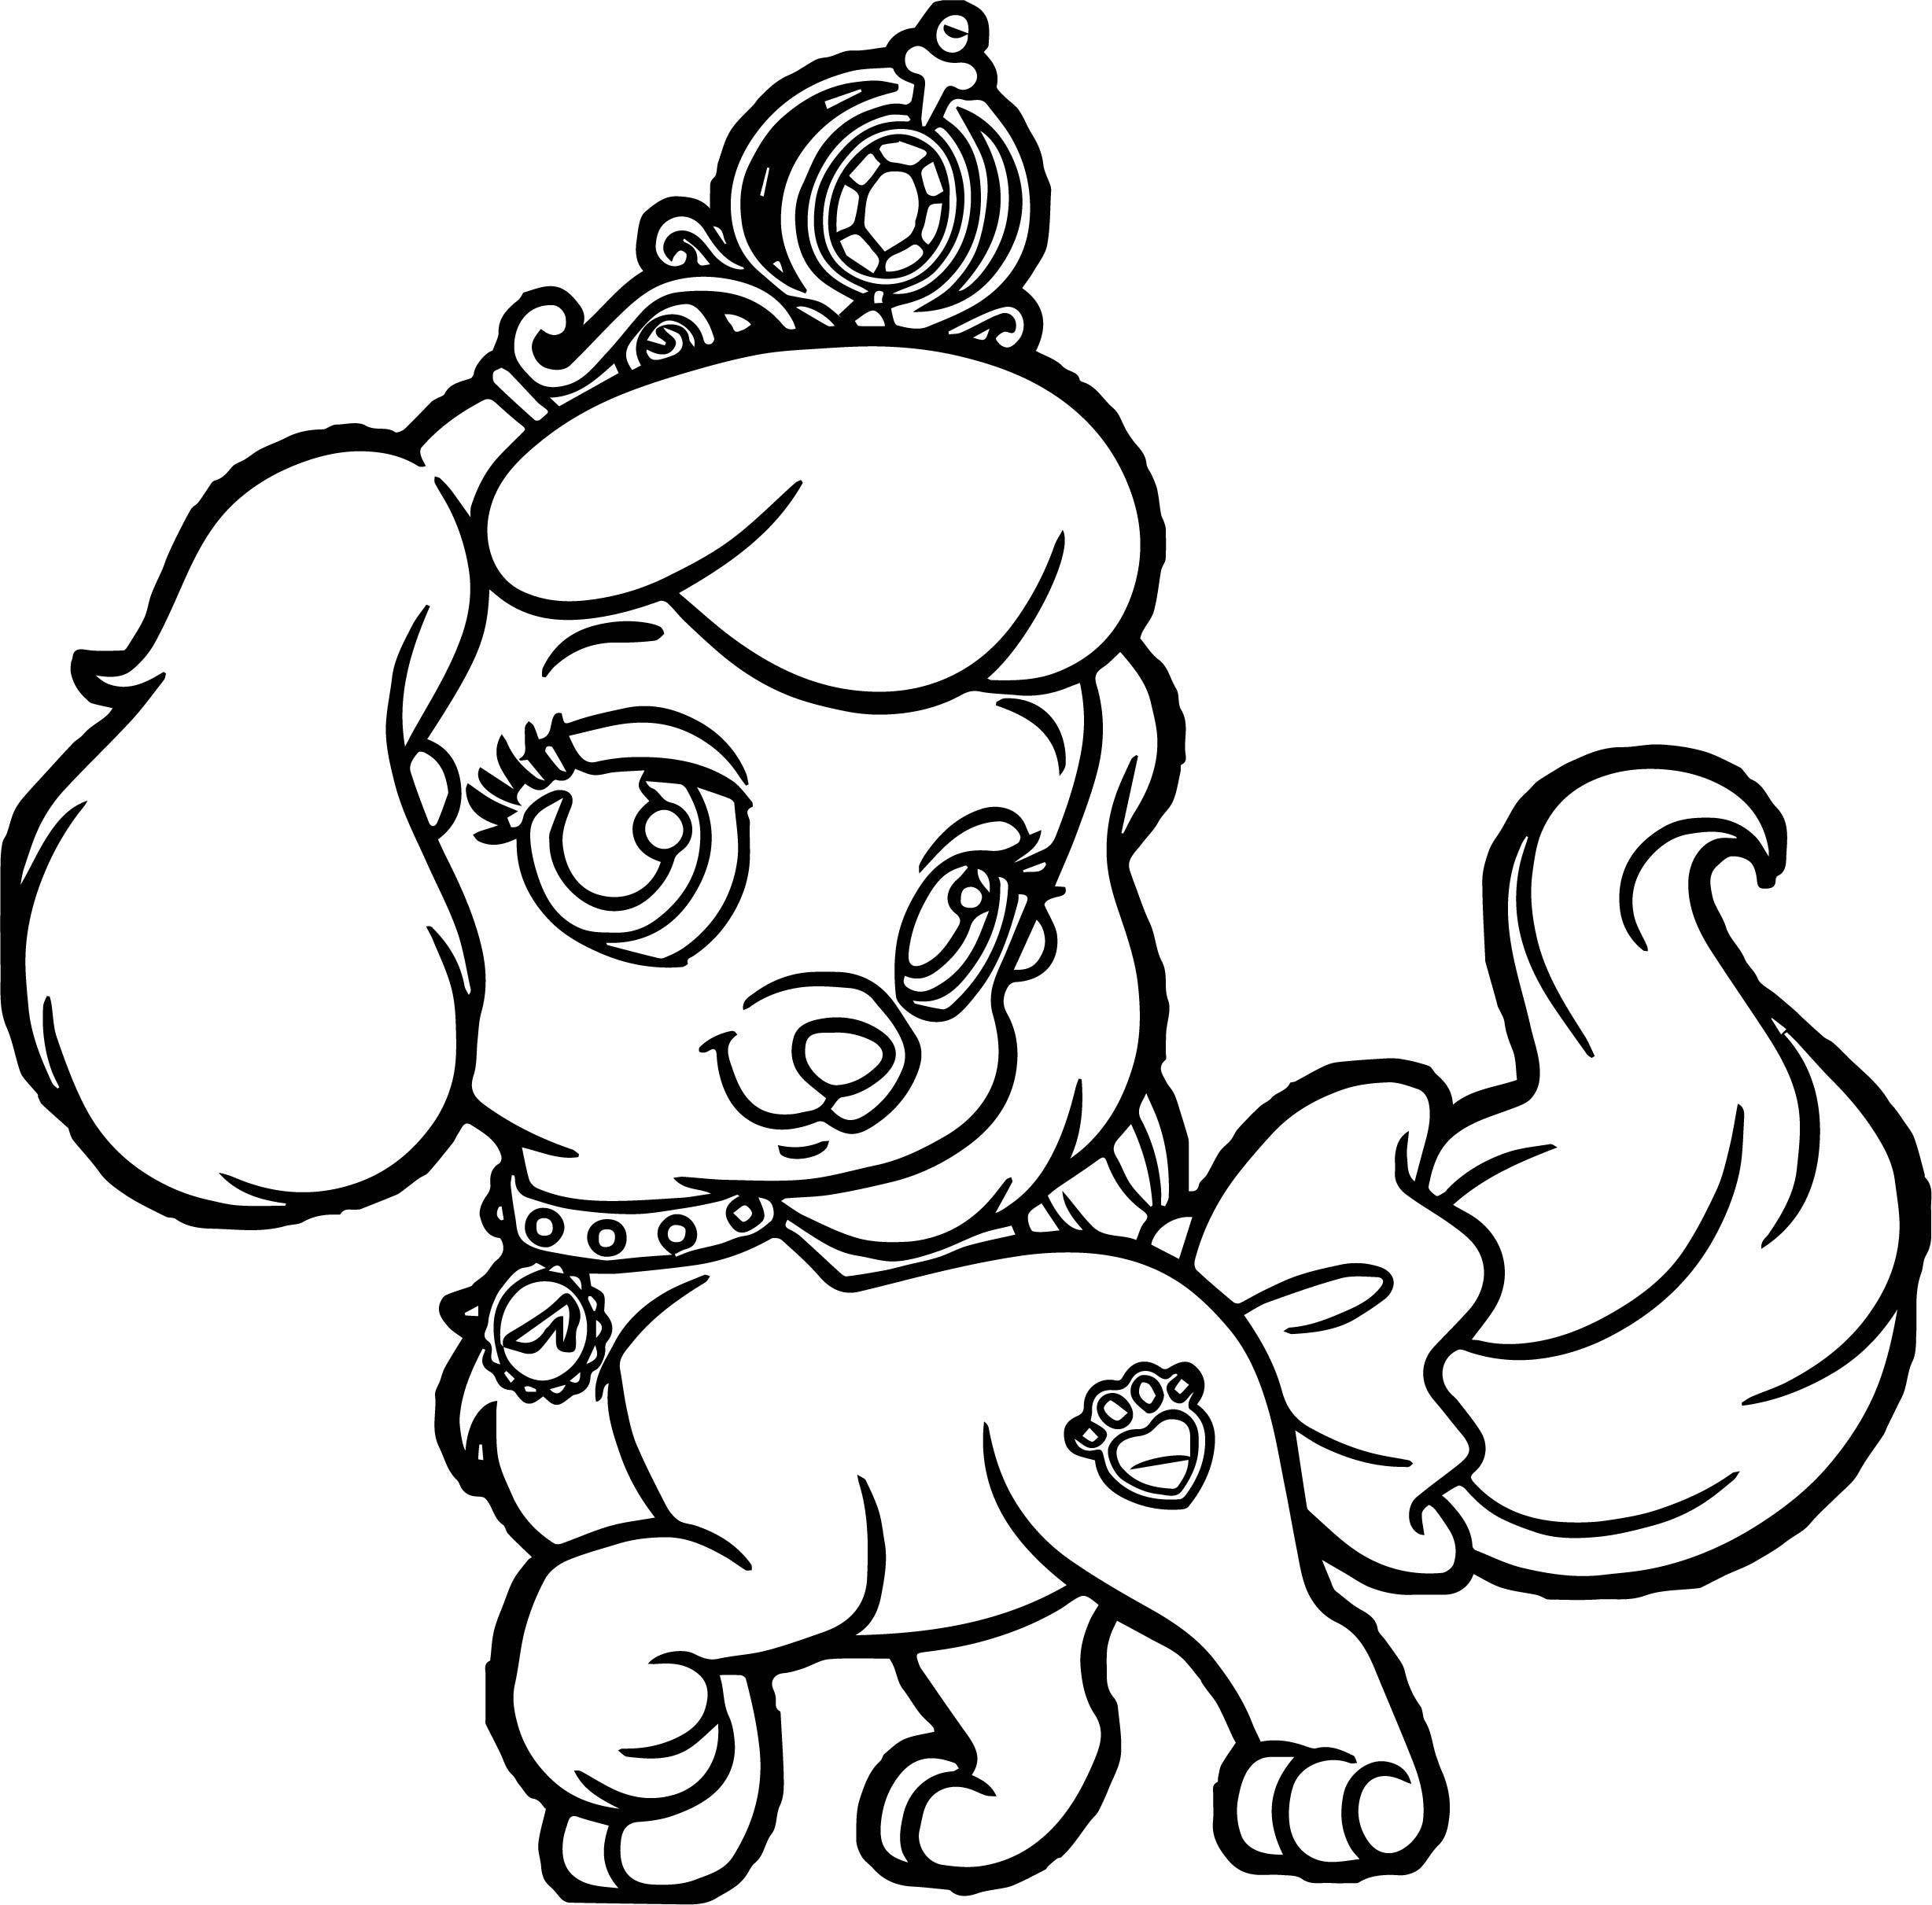 a coloring page of a dog puppy coloring pages best coloring pages for kids a coloring dog page a of